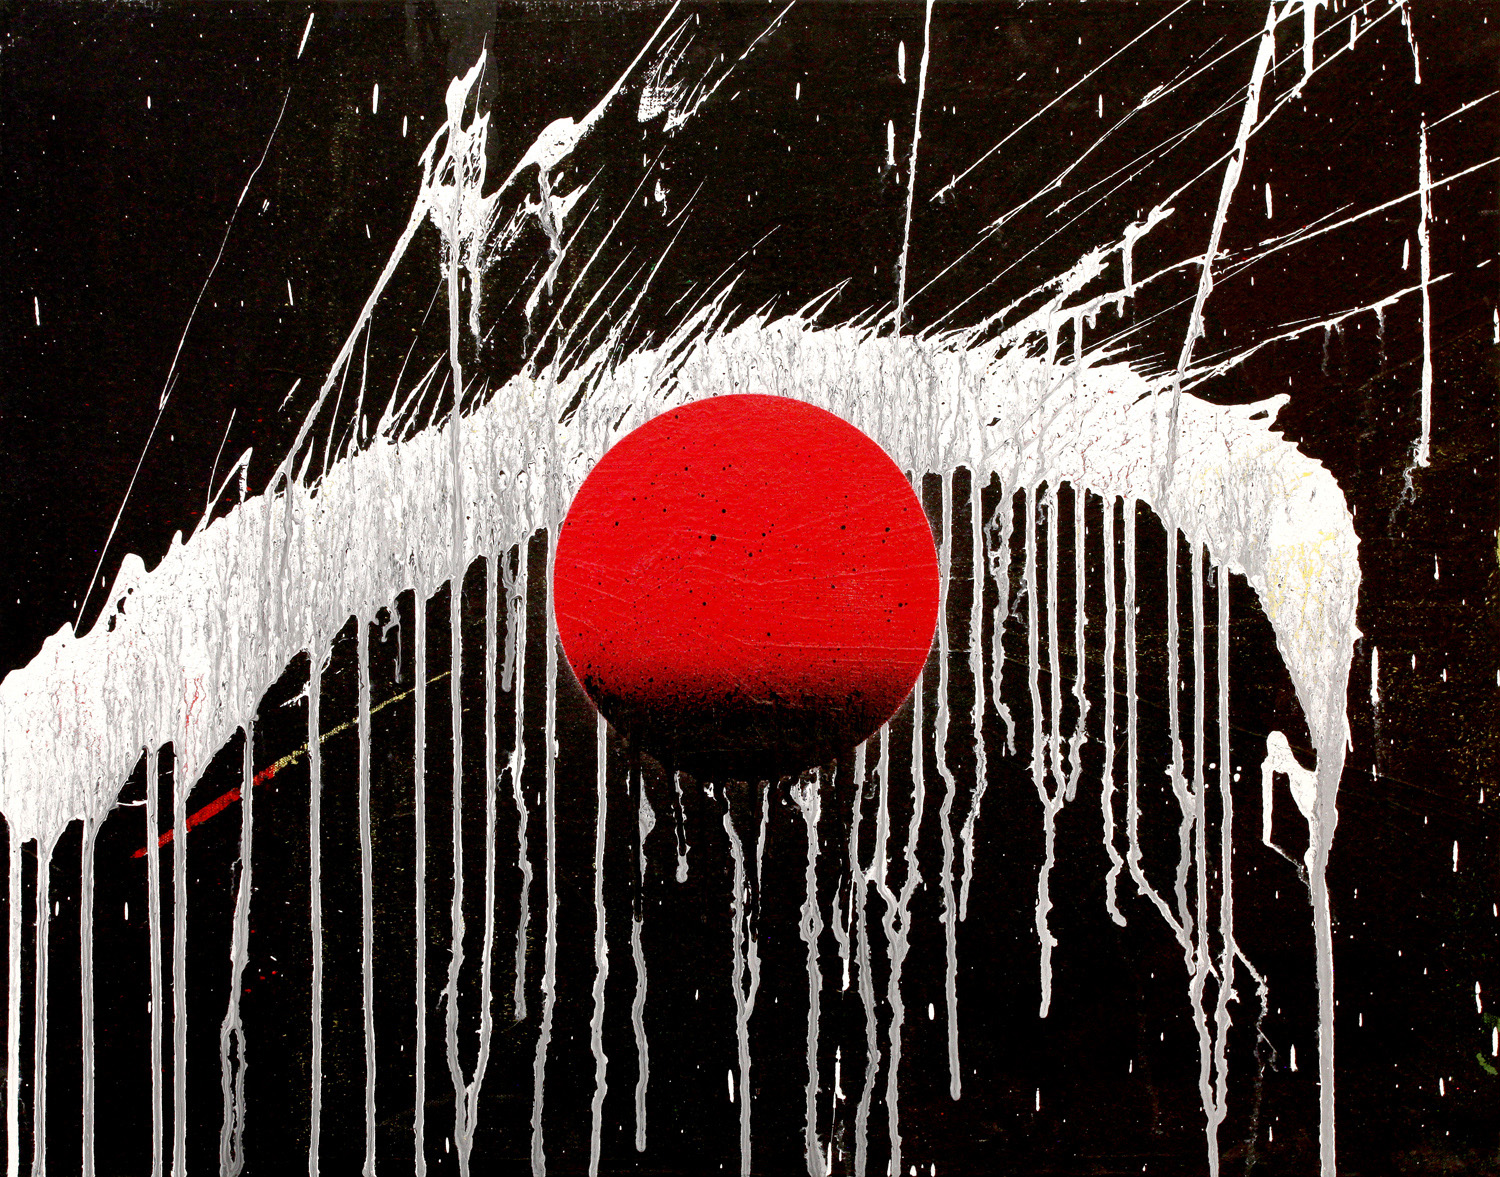 I.L.J.M.T.E. (I Love Japan More Than Ever), 2012 acrylic & spray paint on canvas 22.25 x 28.5 inch